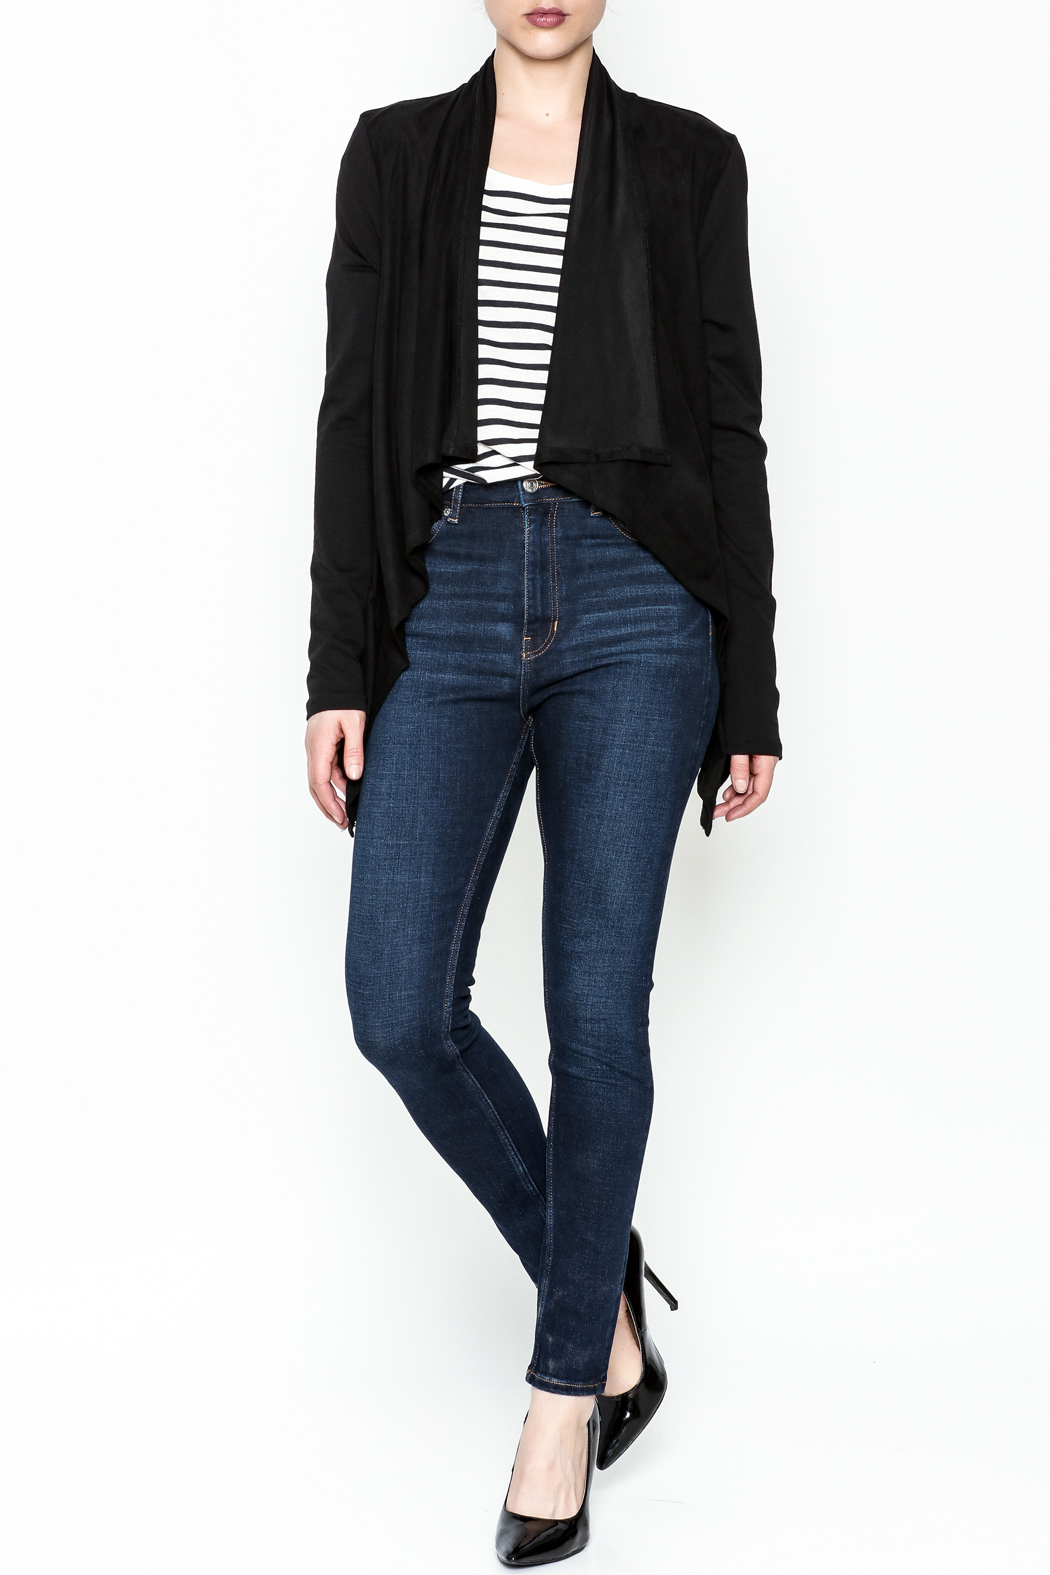 z supply Suede Waterfall Jacket - Side Cropped Image